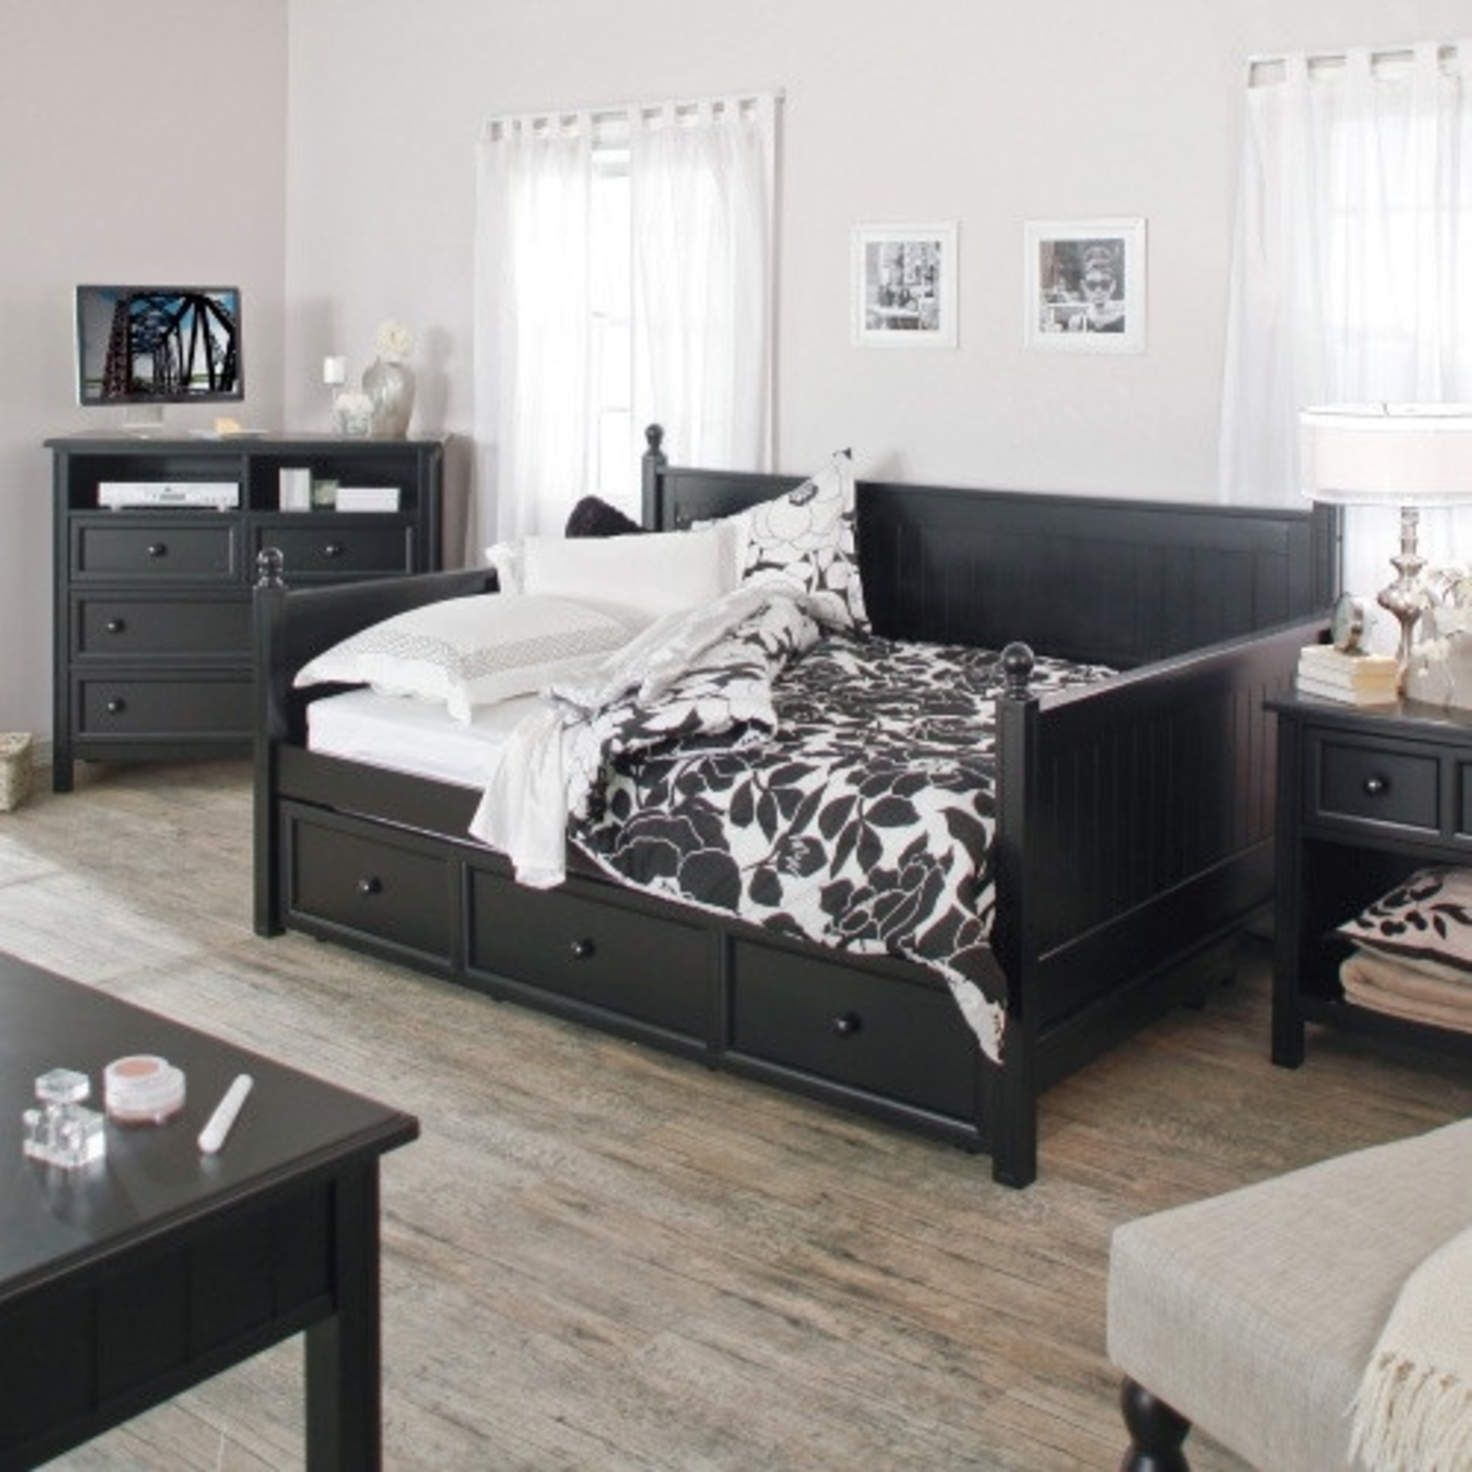 Full size Black Wood Daybed with Pull out Trundle Bed